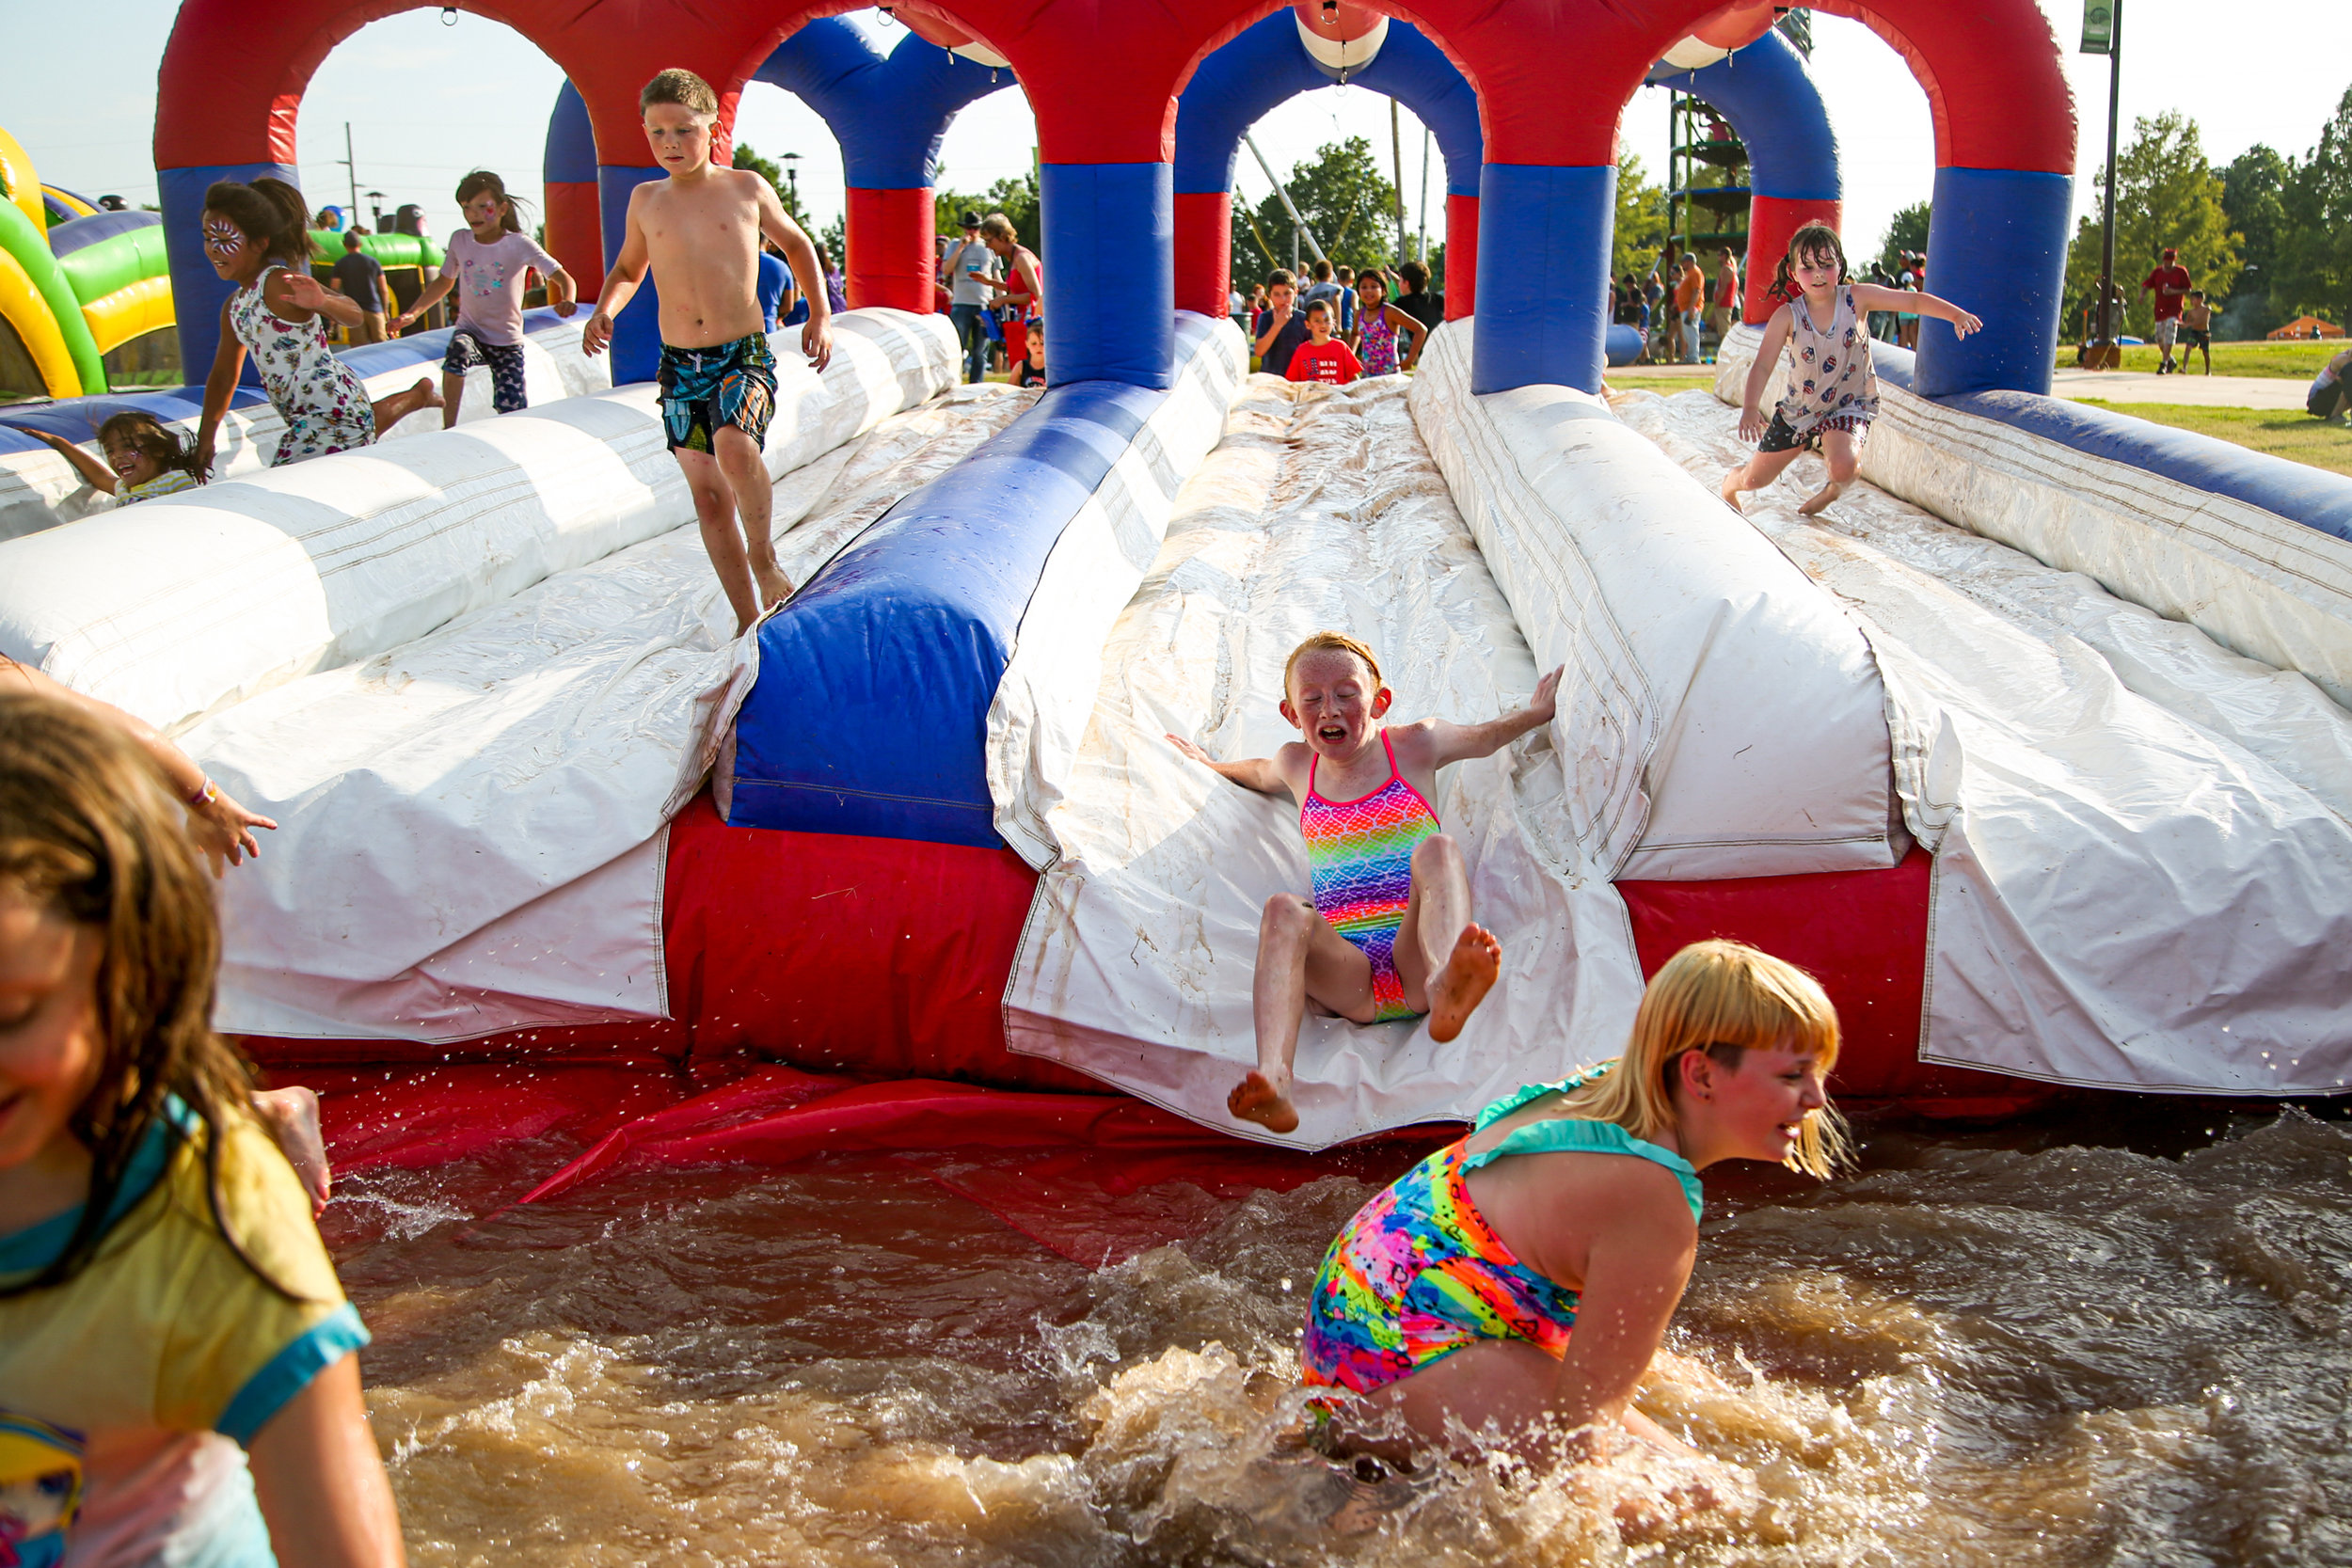 Children play on an inflatable waterslide during FreedomFest at River West Festival Park in Tulsa on July 4, 2019.